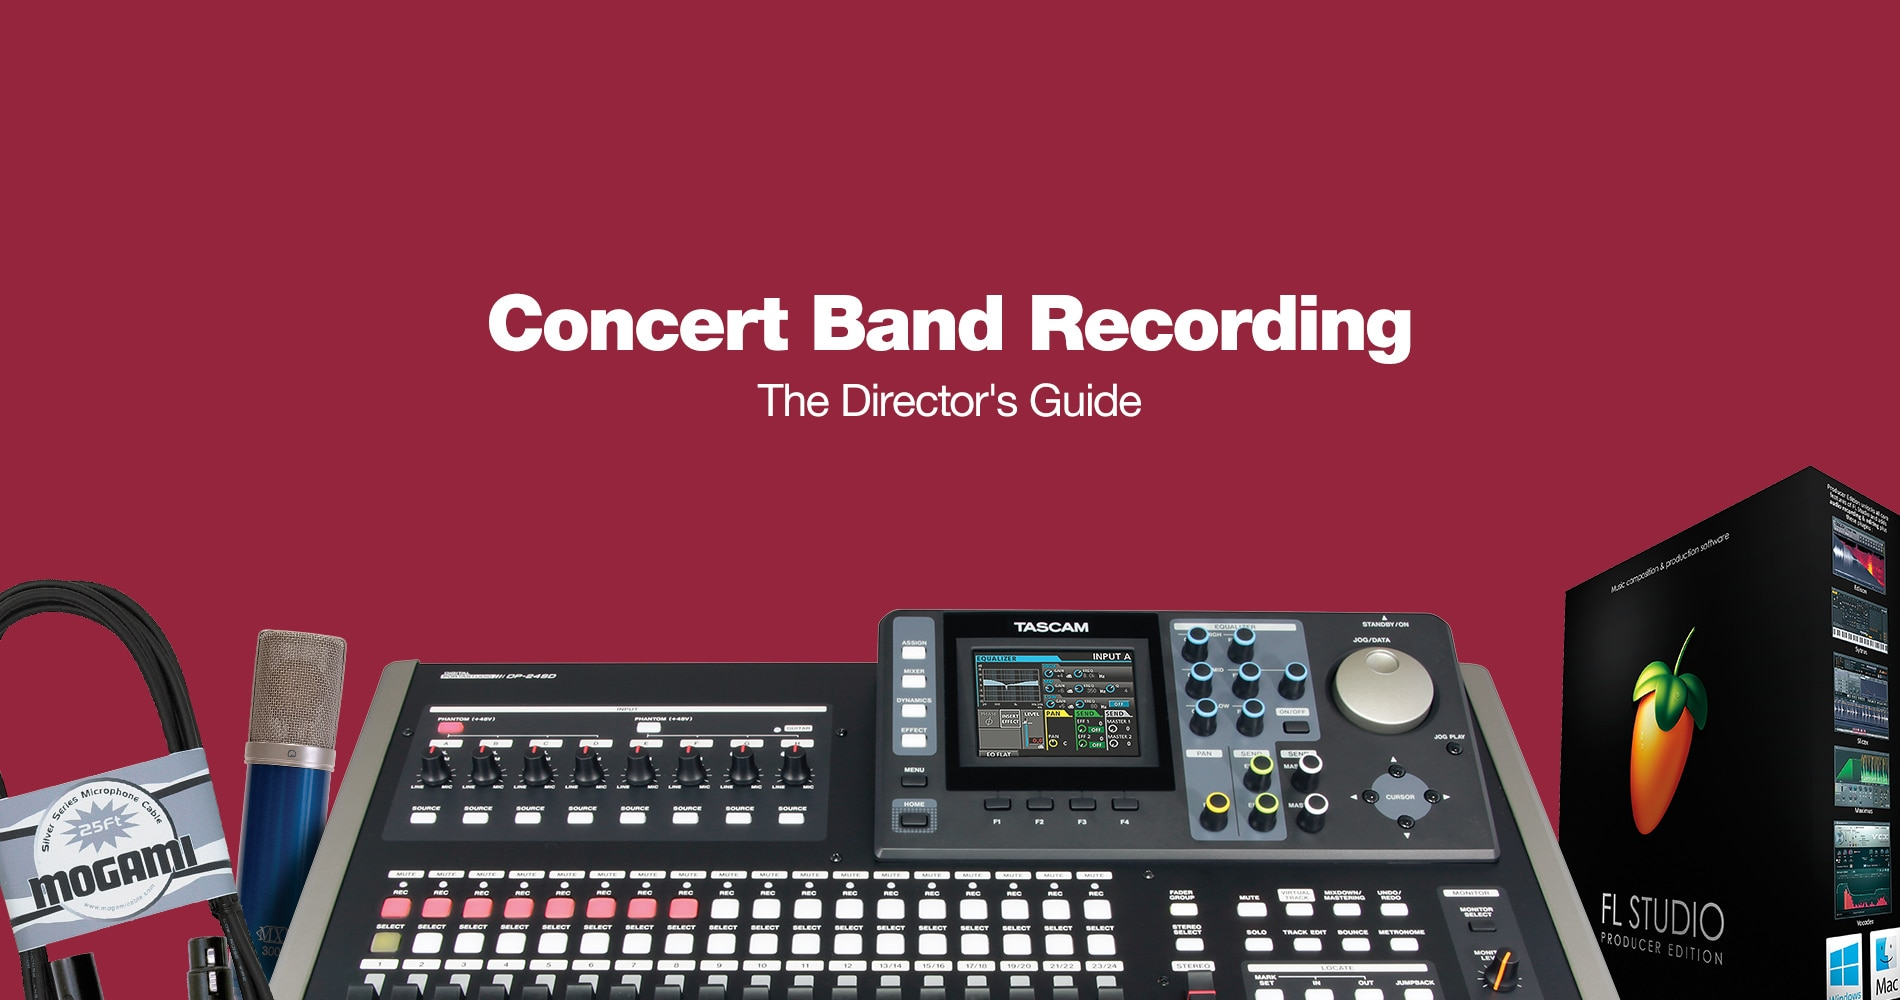 Concert Band Recording Buying Guide